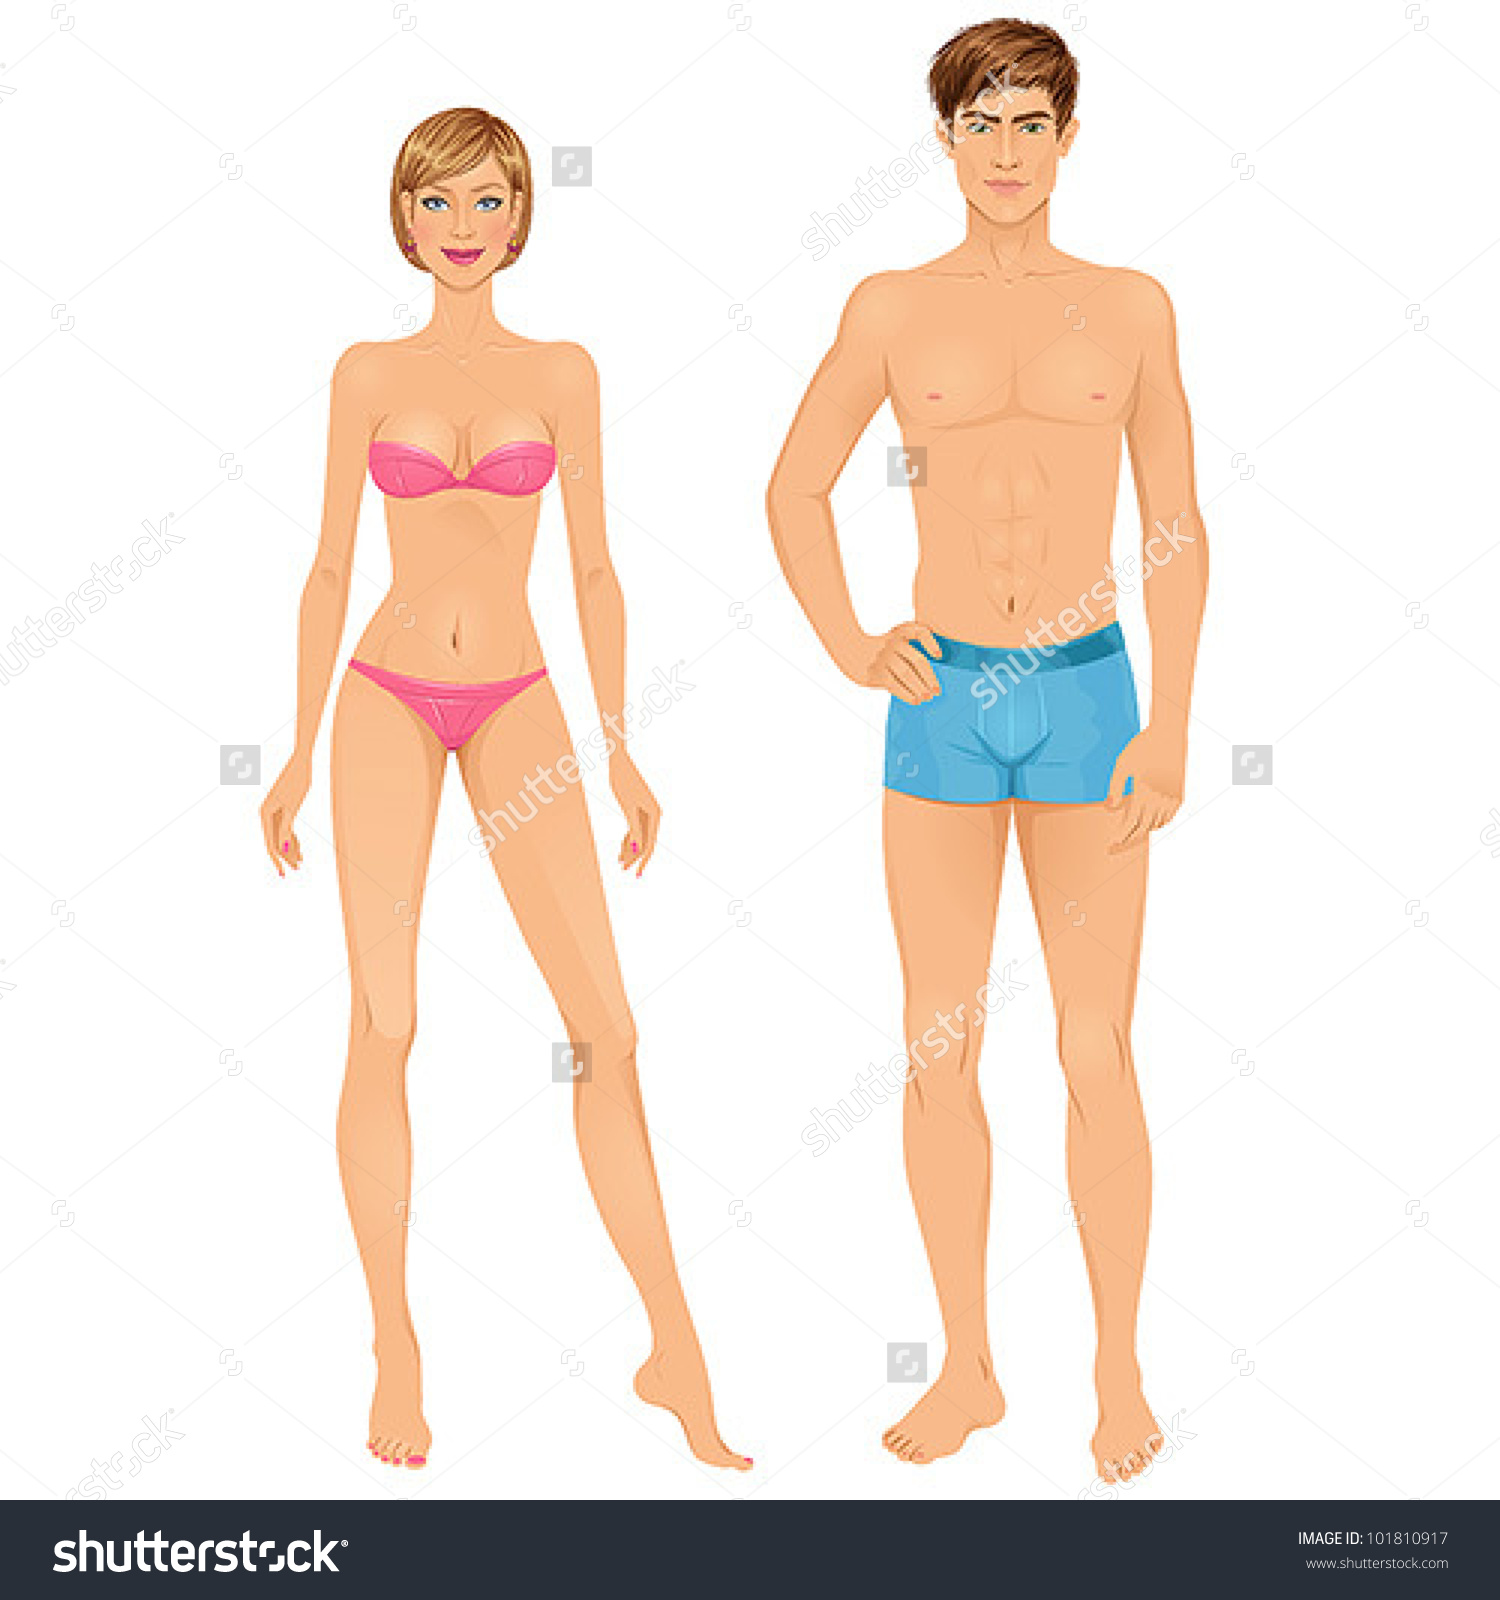 Man and woman body clipart.